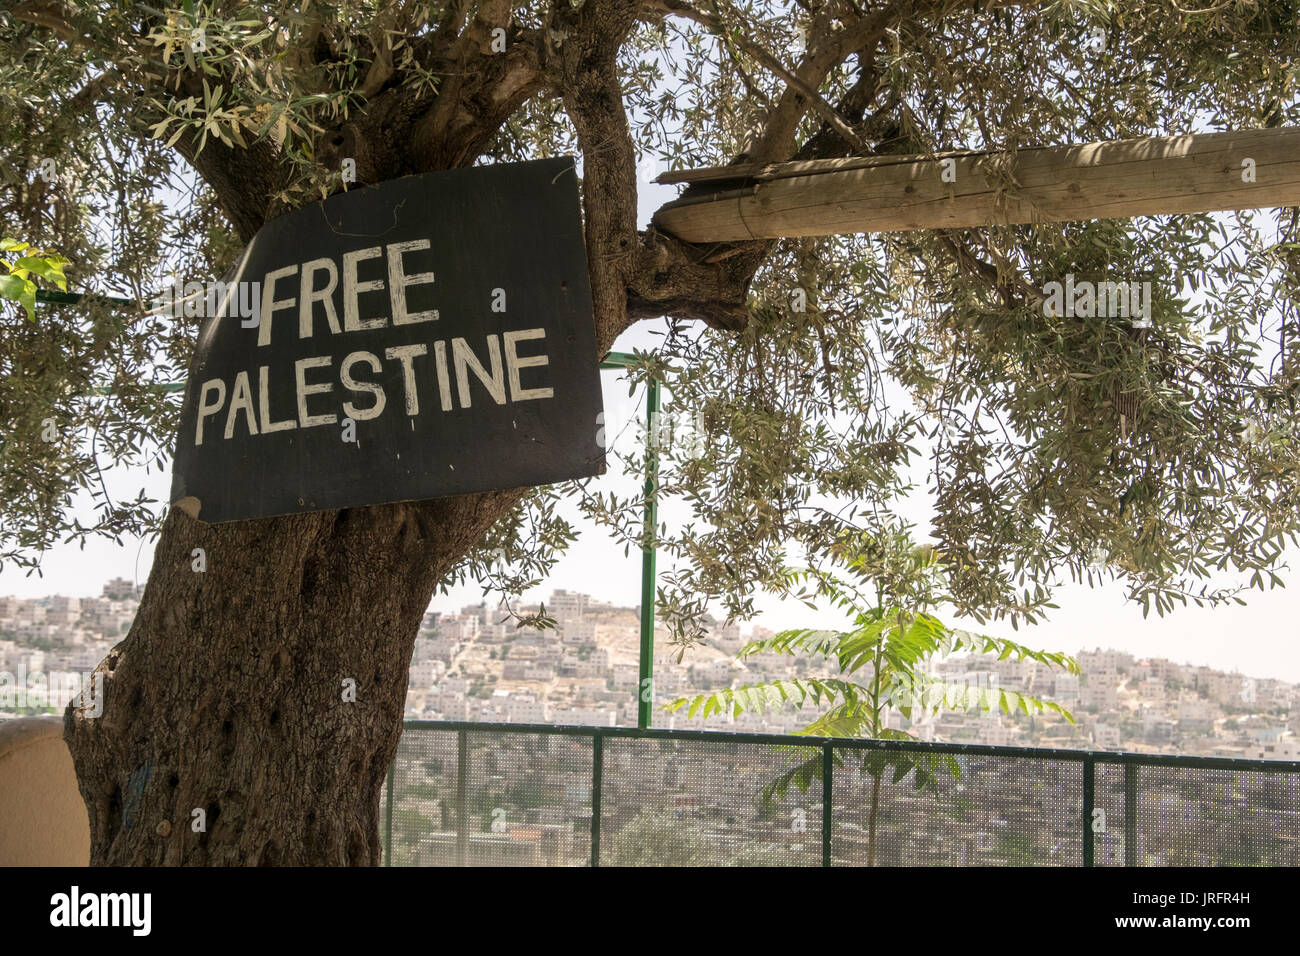 A view of the center of the conflicted city of Hebron as seen from a Palestinian neighborhood overlooking it with a Free Palestine sign on a tree - Stock Image